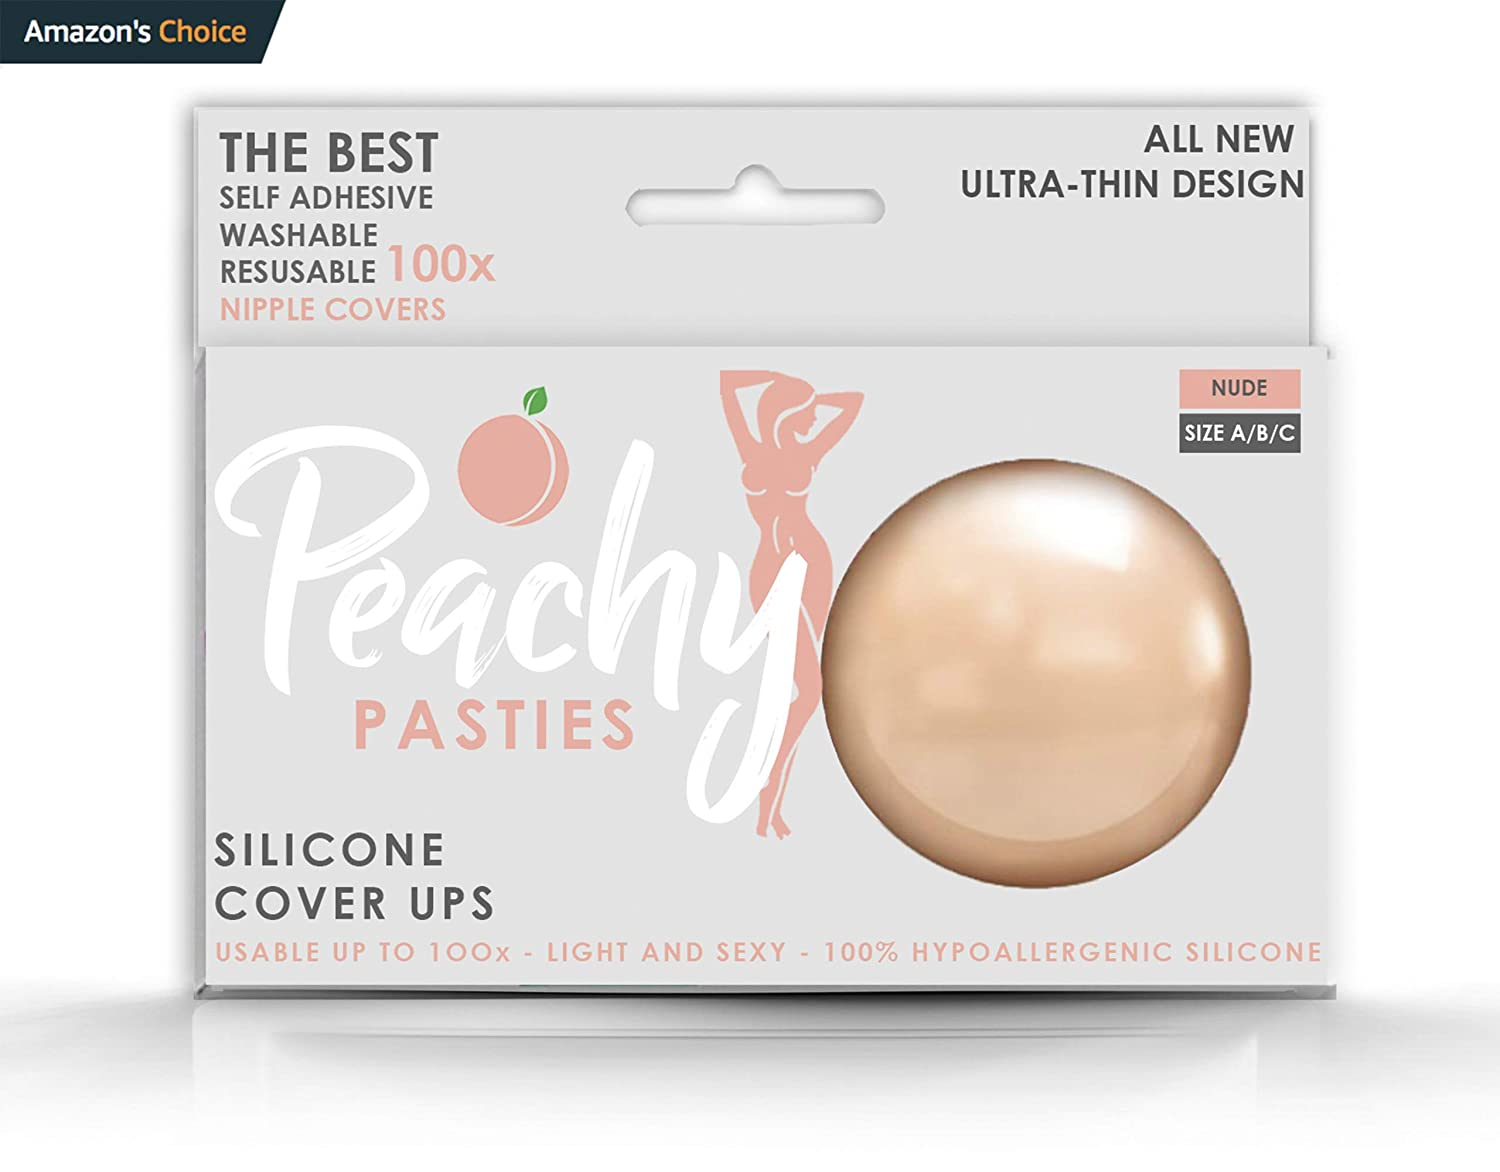 1 Petal Pair PEACHY Pasties for Women Adhesive Reusable NippleCovers Round Petal Silicone Cover